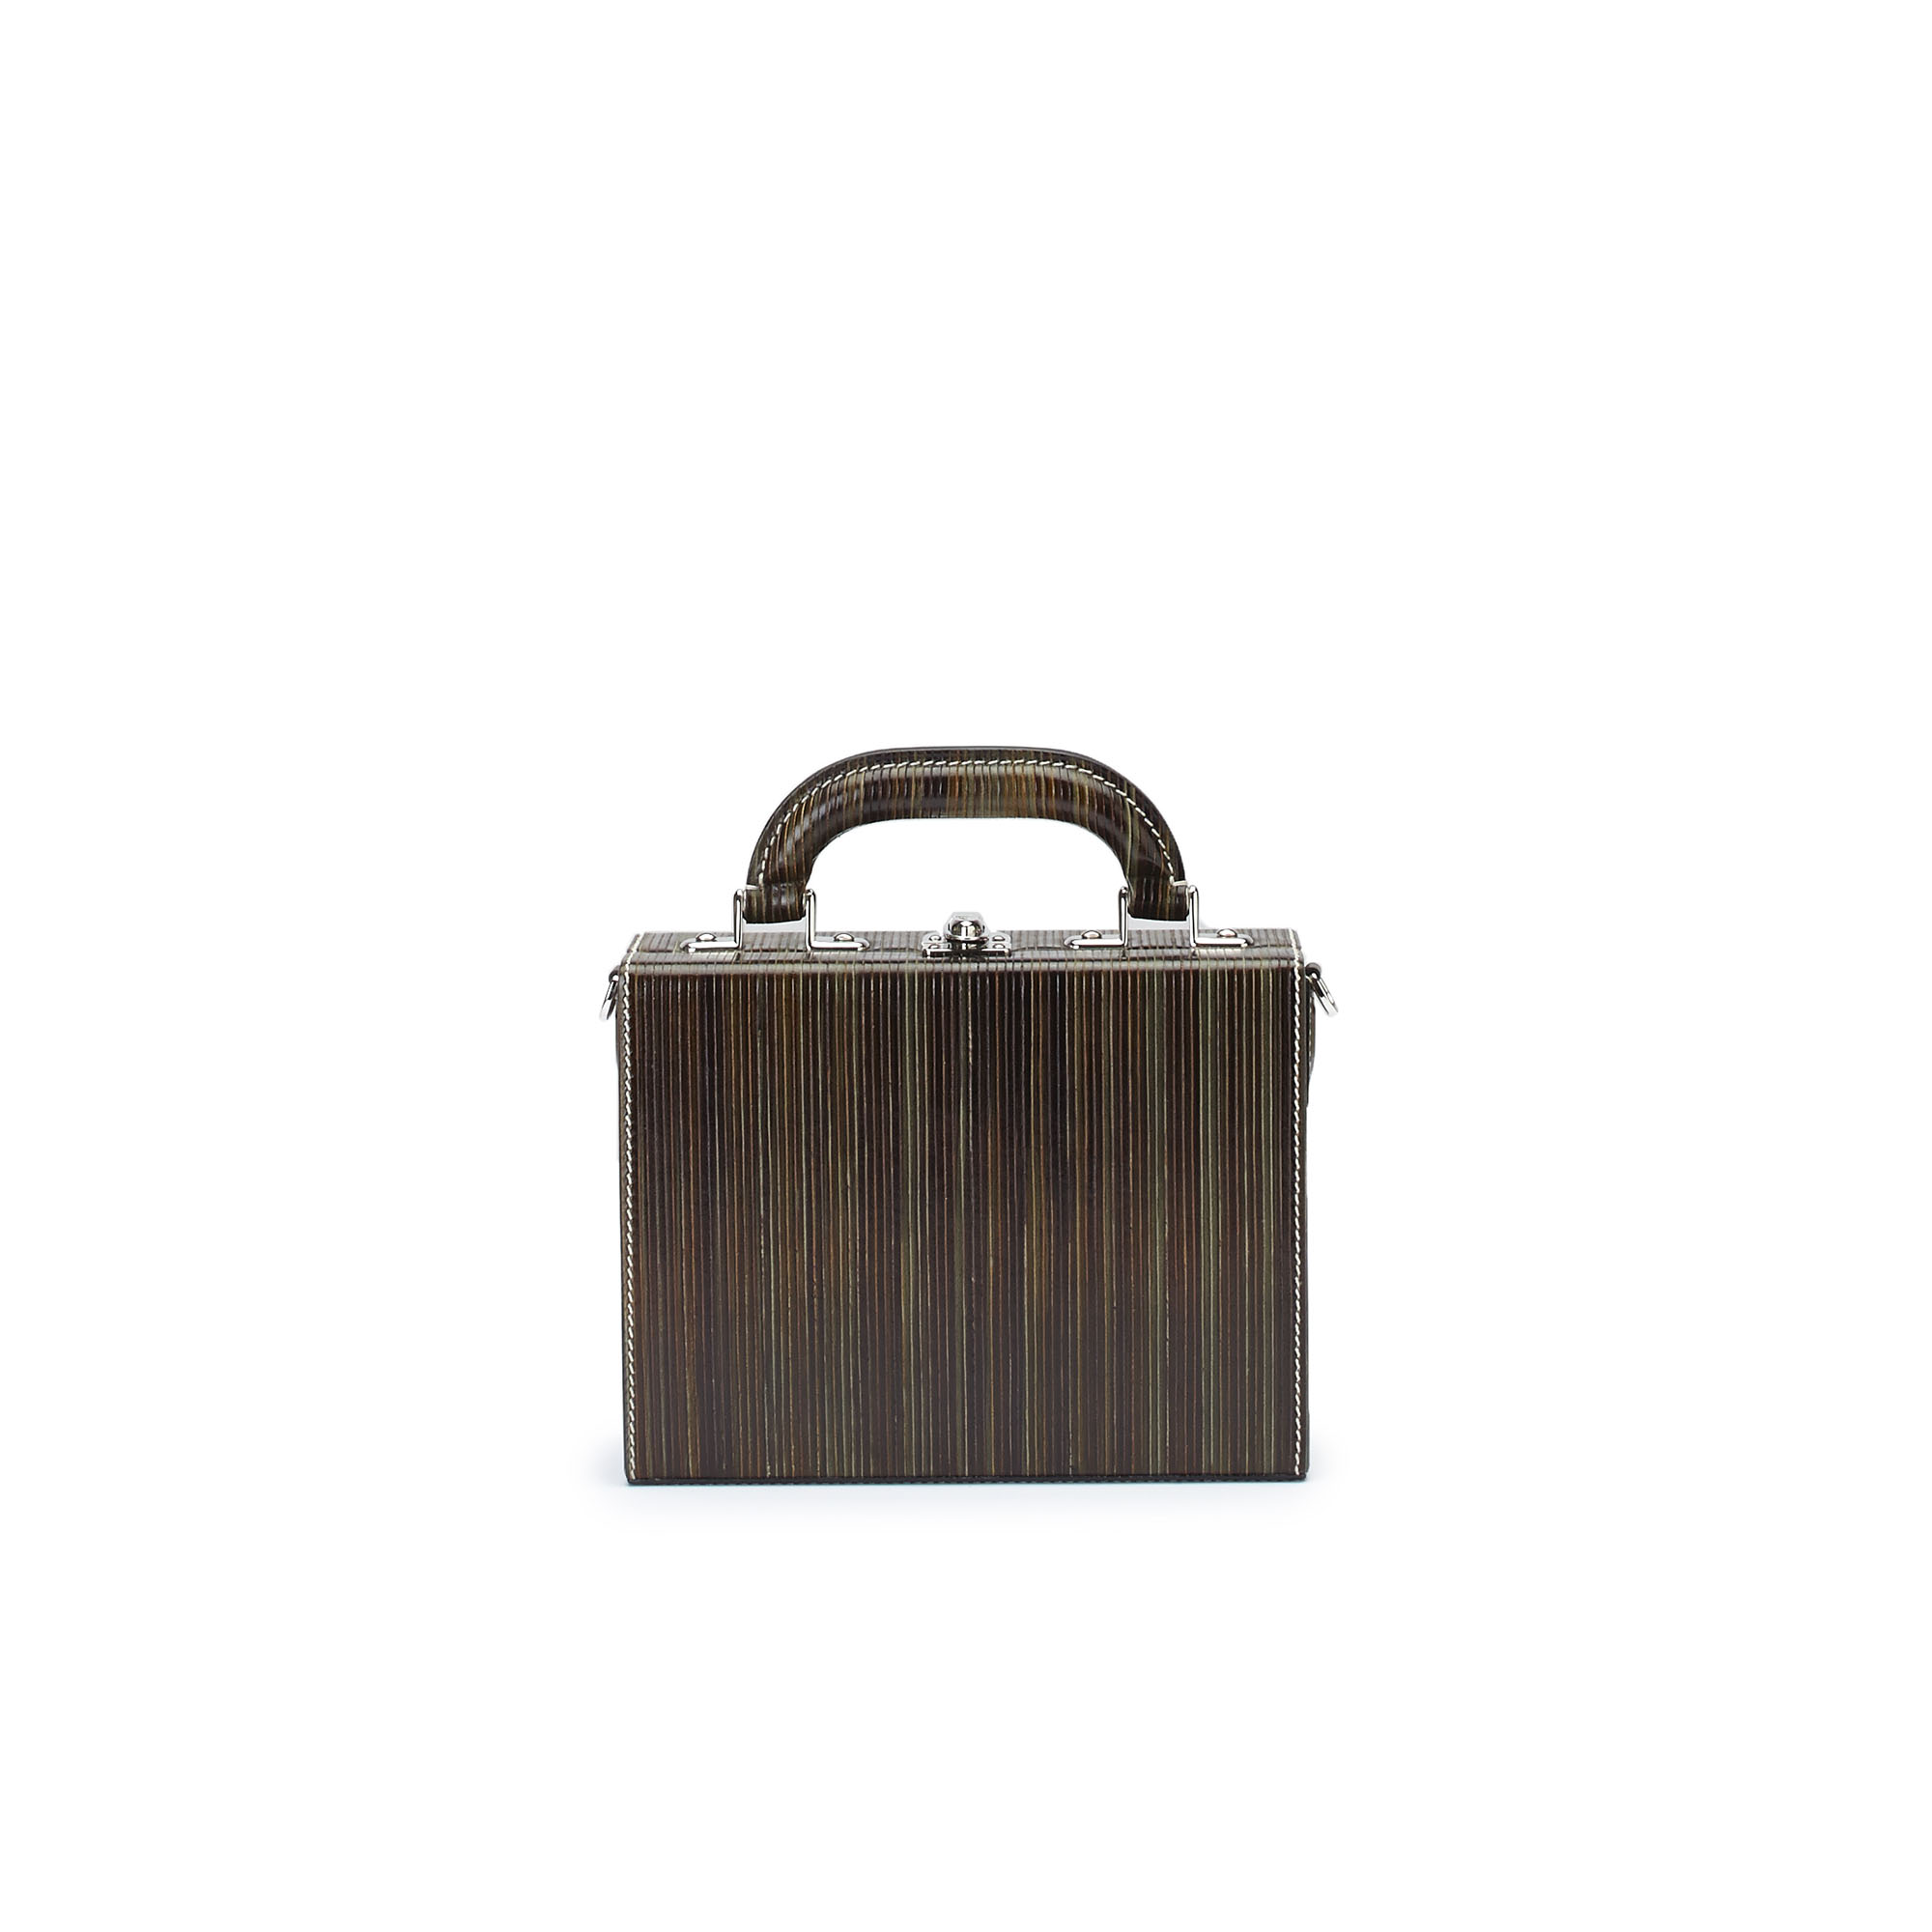 The green wood leather Squared Bertoncina suitcase by Bertoni 1949 01